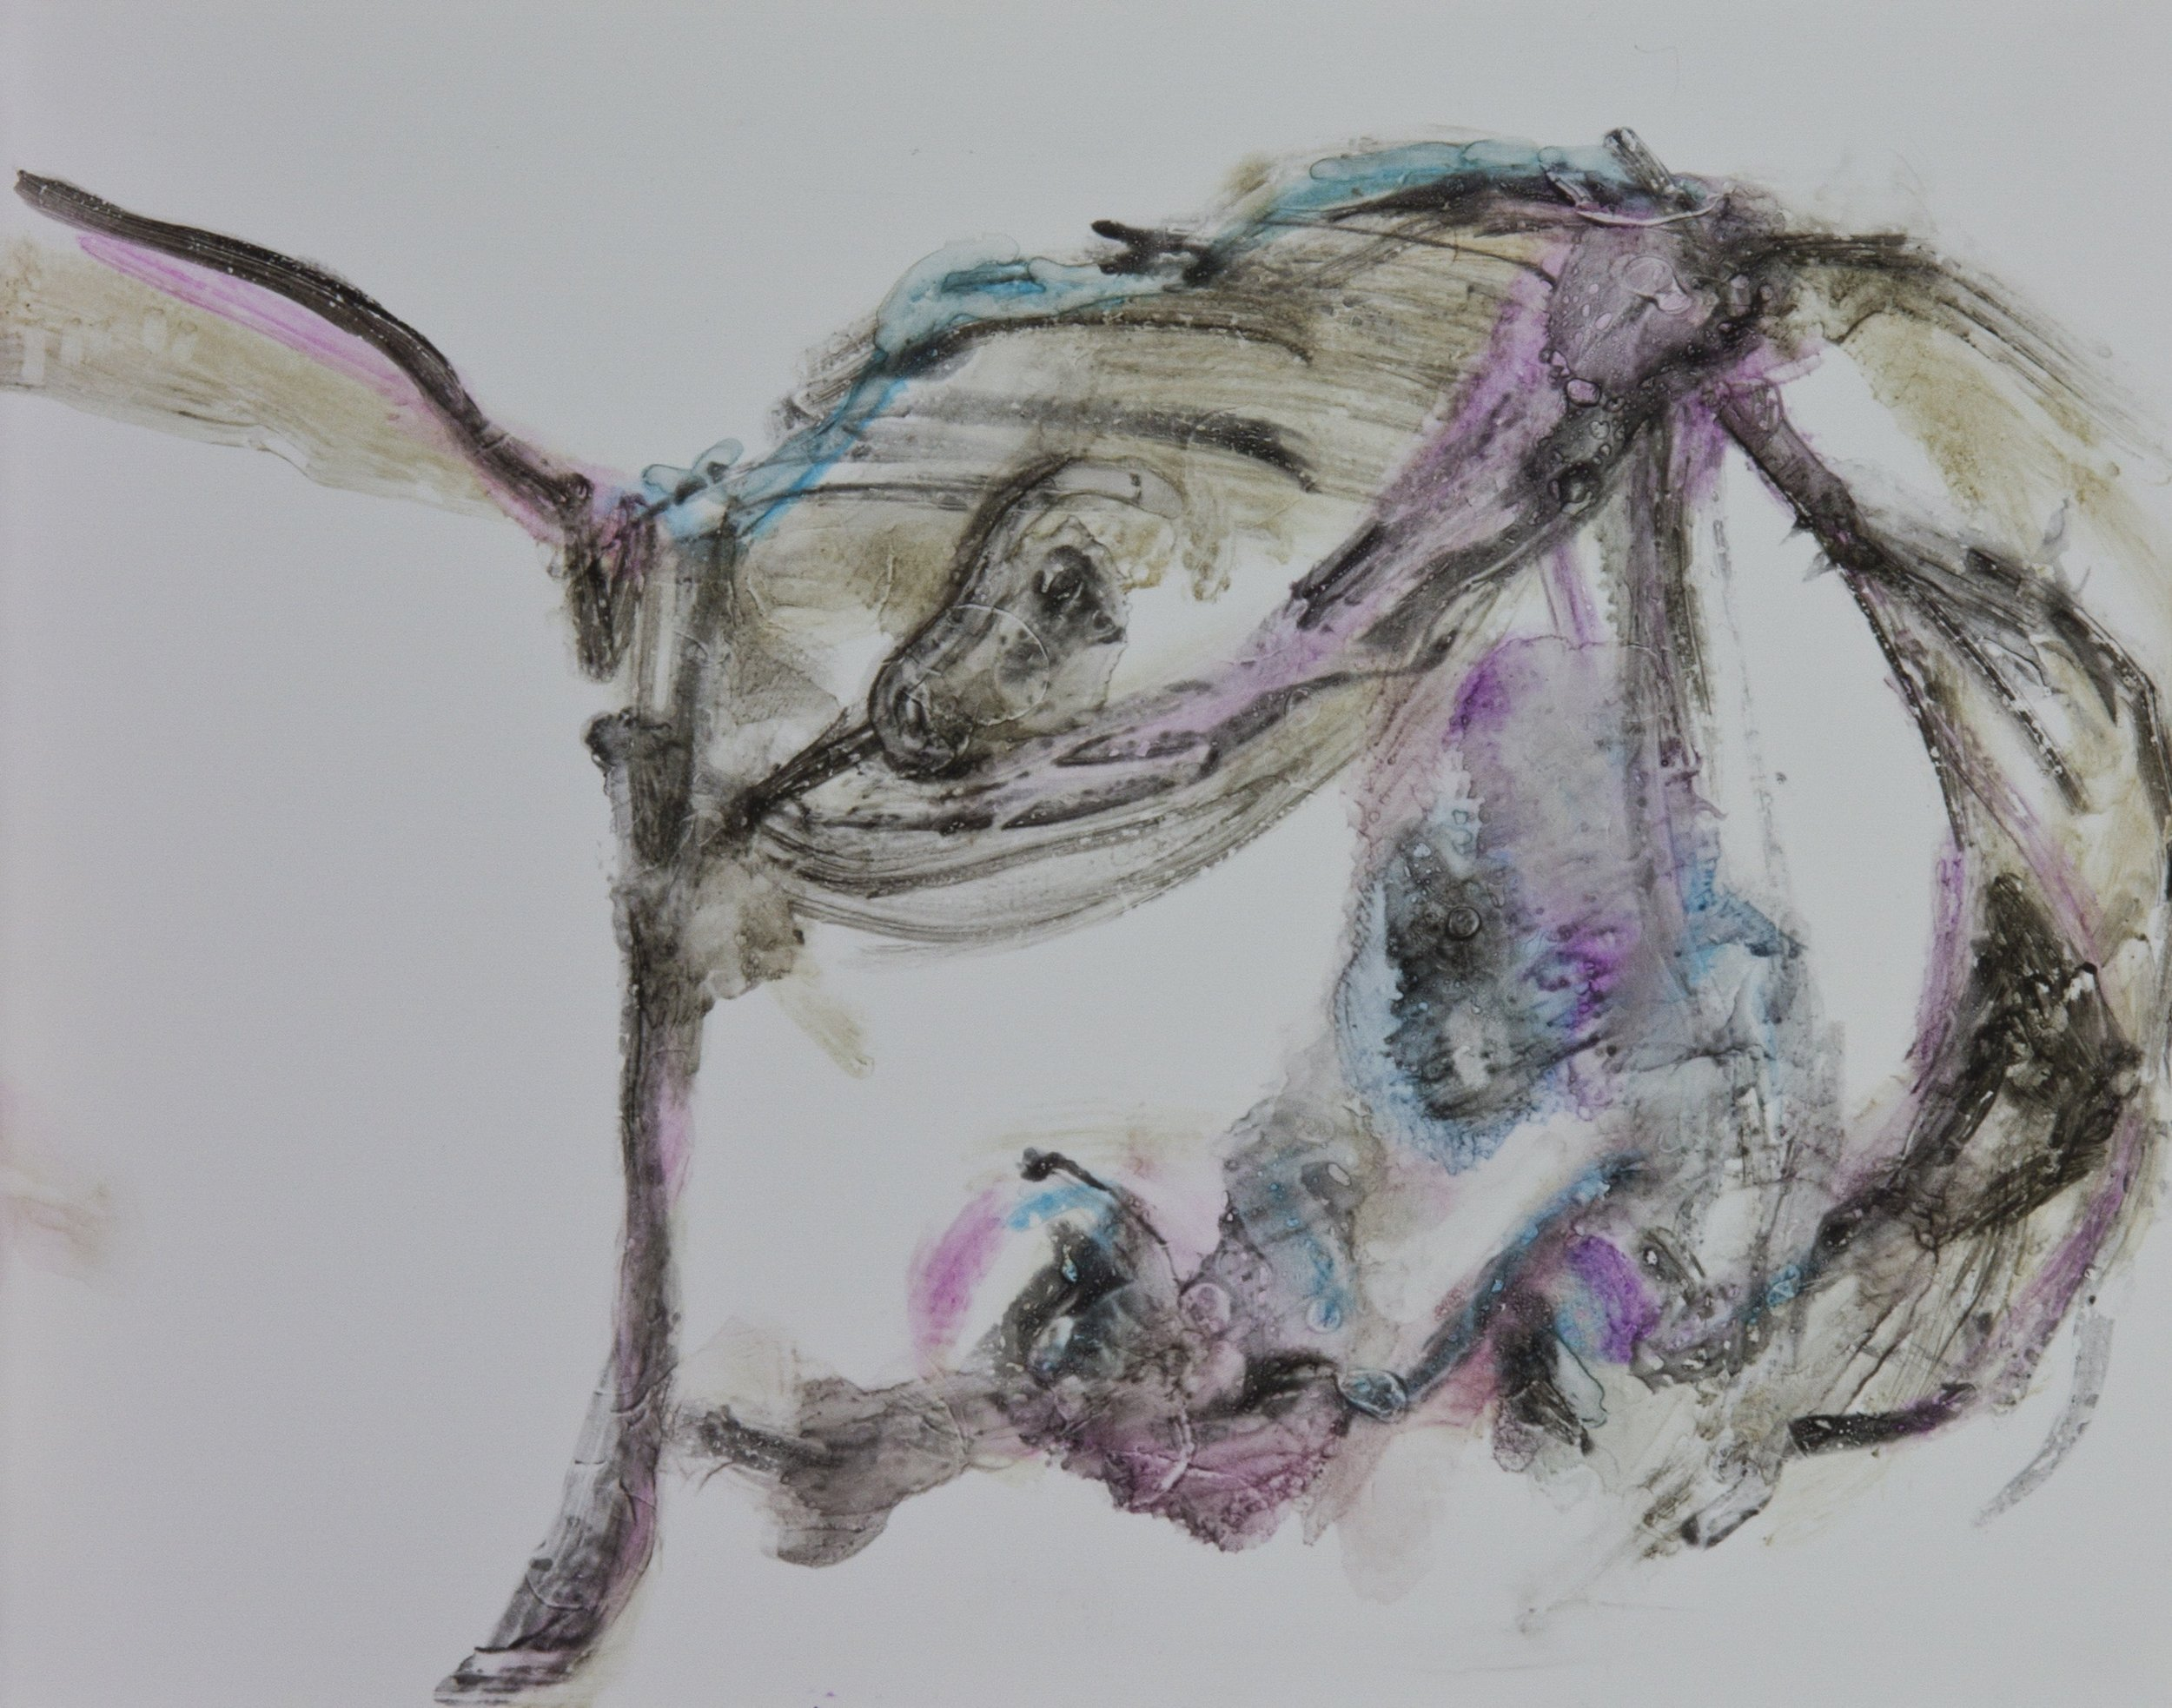 Acts 37, 2010, watercolor monotype on polypropylene, 11x14 inches